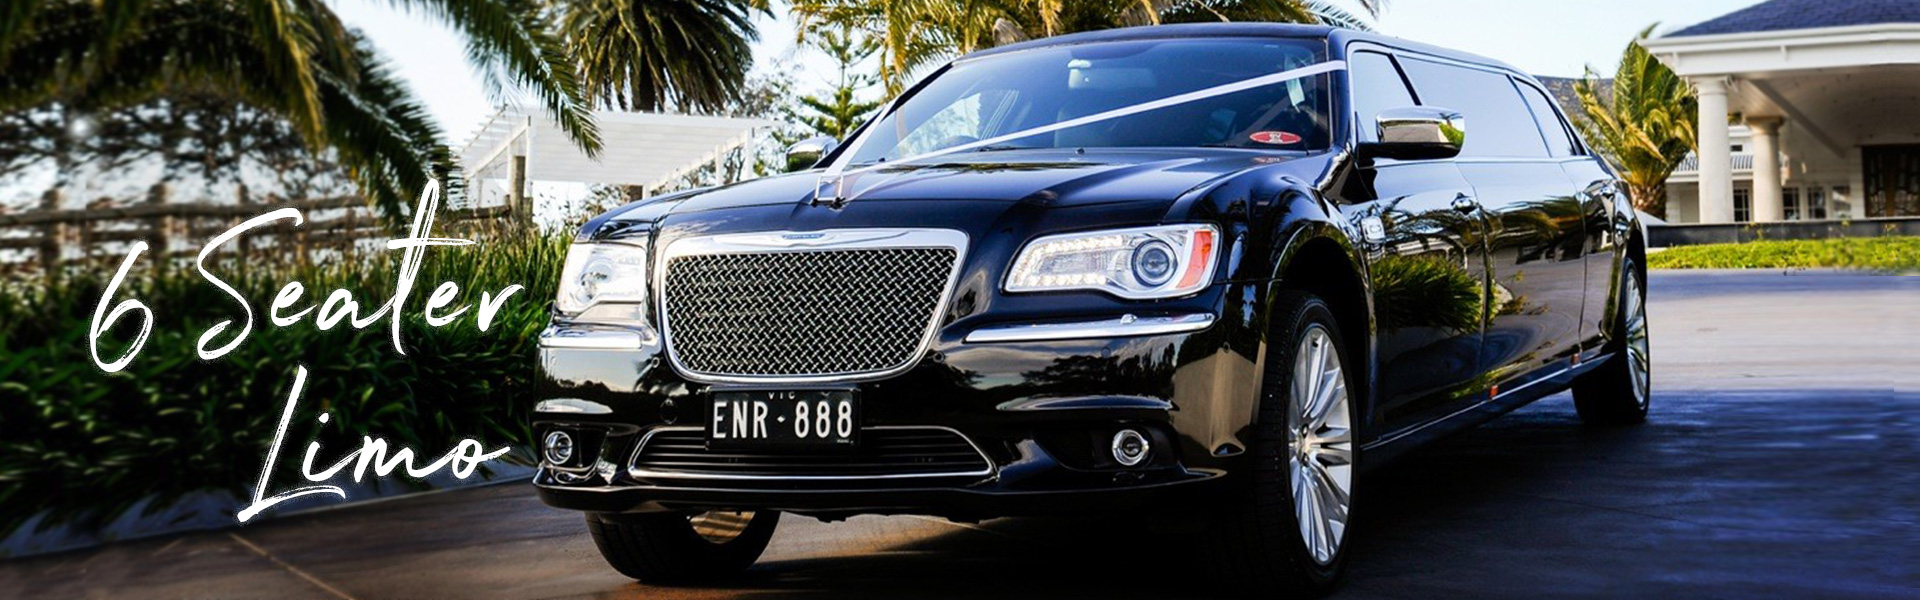 Black Chrysler 7 seater Limo Hire Melbourne